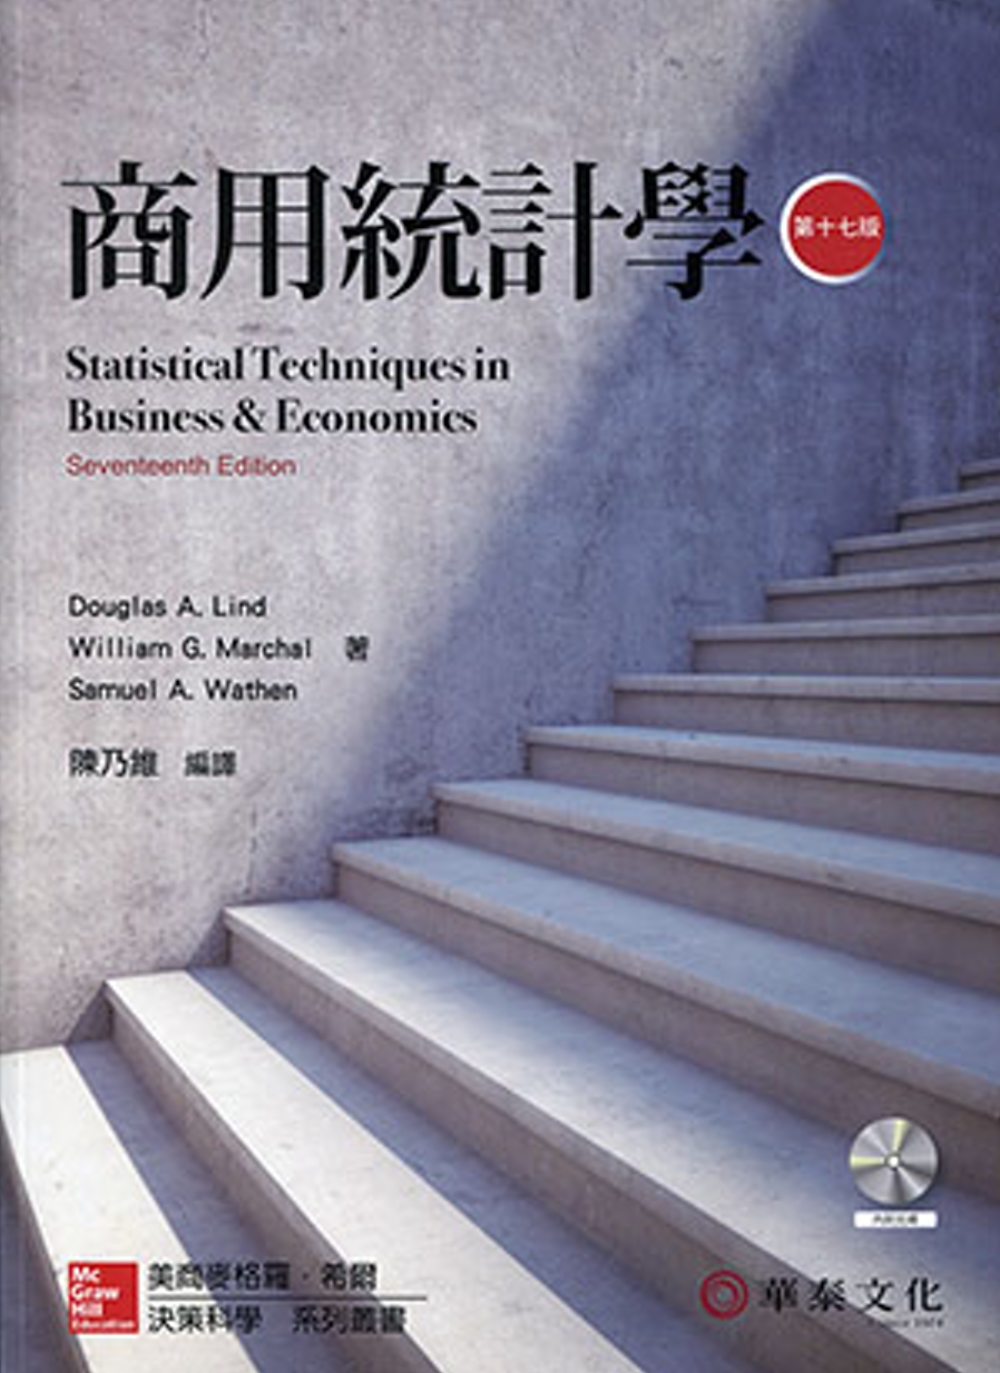 商用統計學 (Lind/Statistical Techniques in Business & Economics 17e)(附有聲Audio CD/軟體CD-ROM光碟)